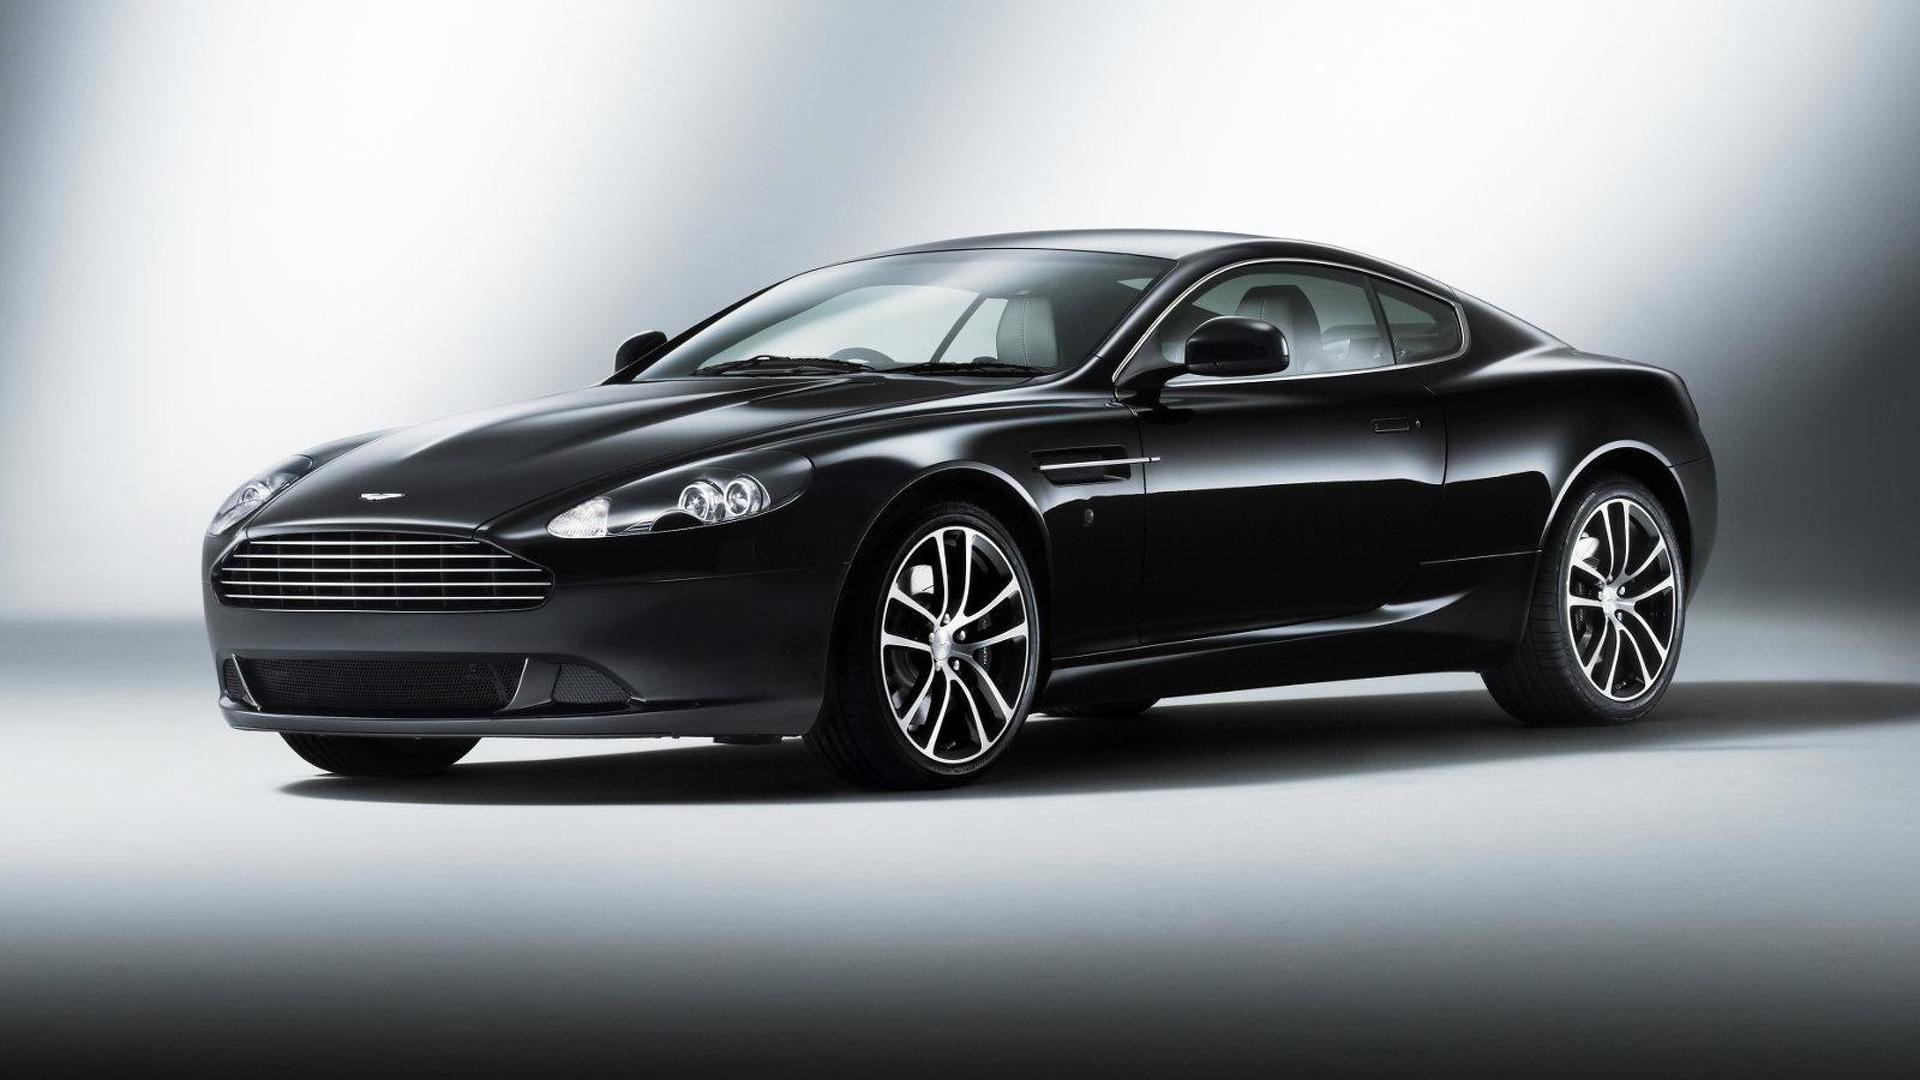 Three Aston Martin Db9 Special Editions Announced Morning Frost Carbon Black And Quantum Silver